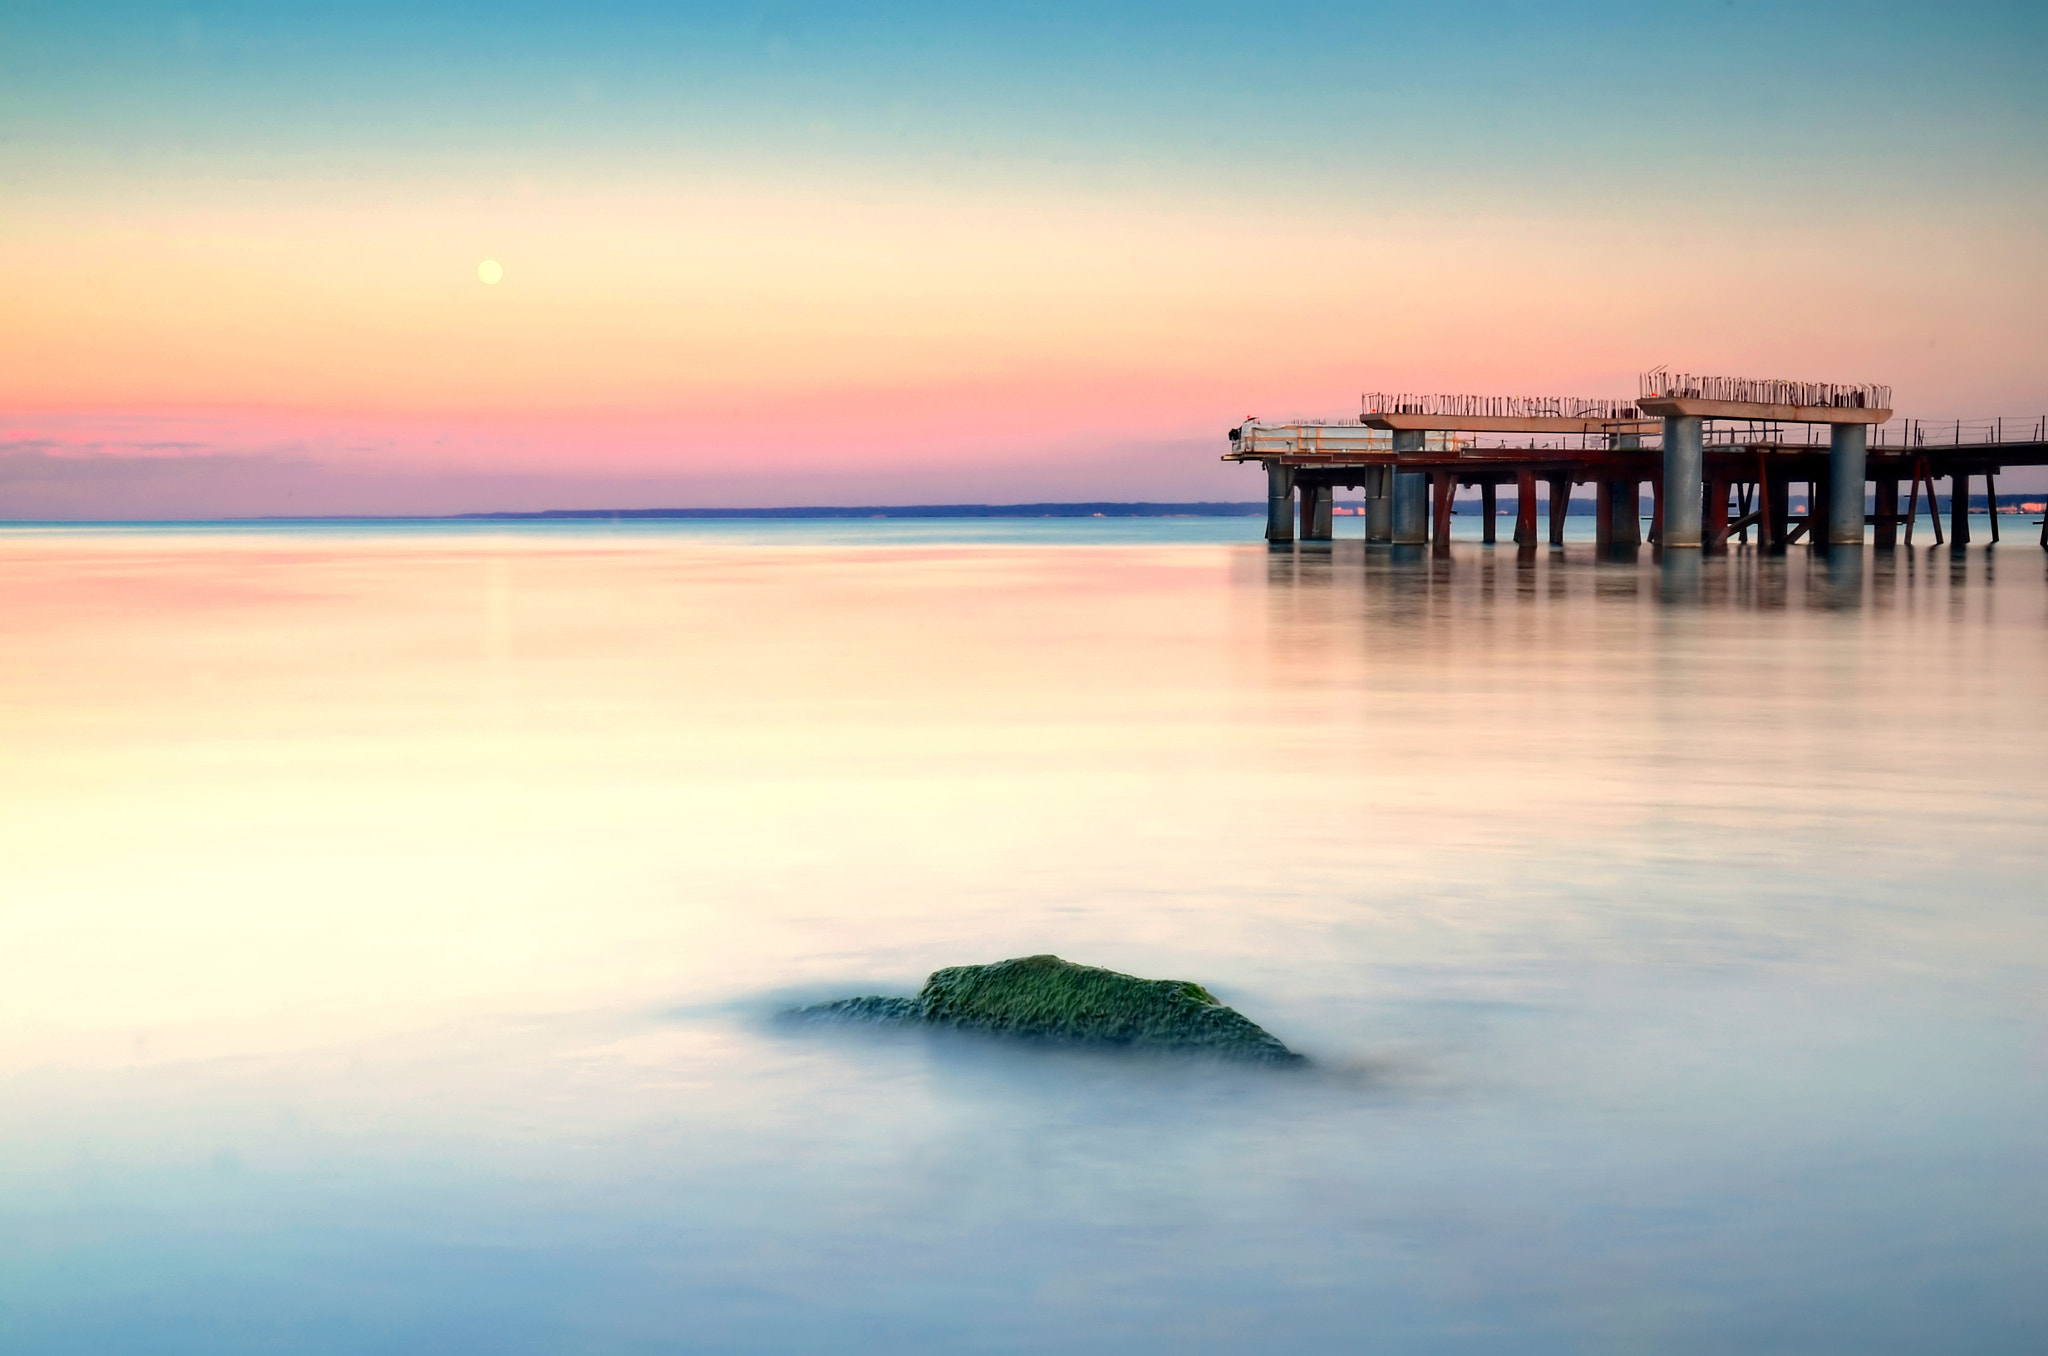 Photograph full moon and a pier by Andrzej Pradzynski on 500px